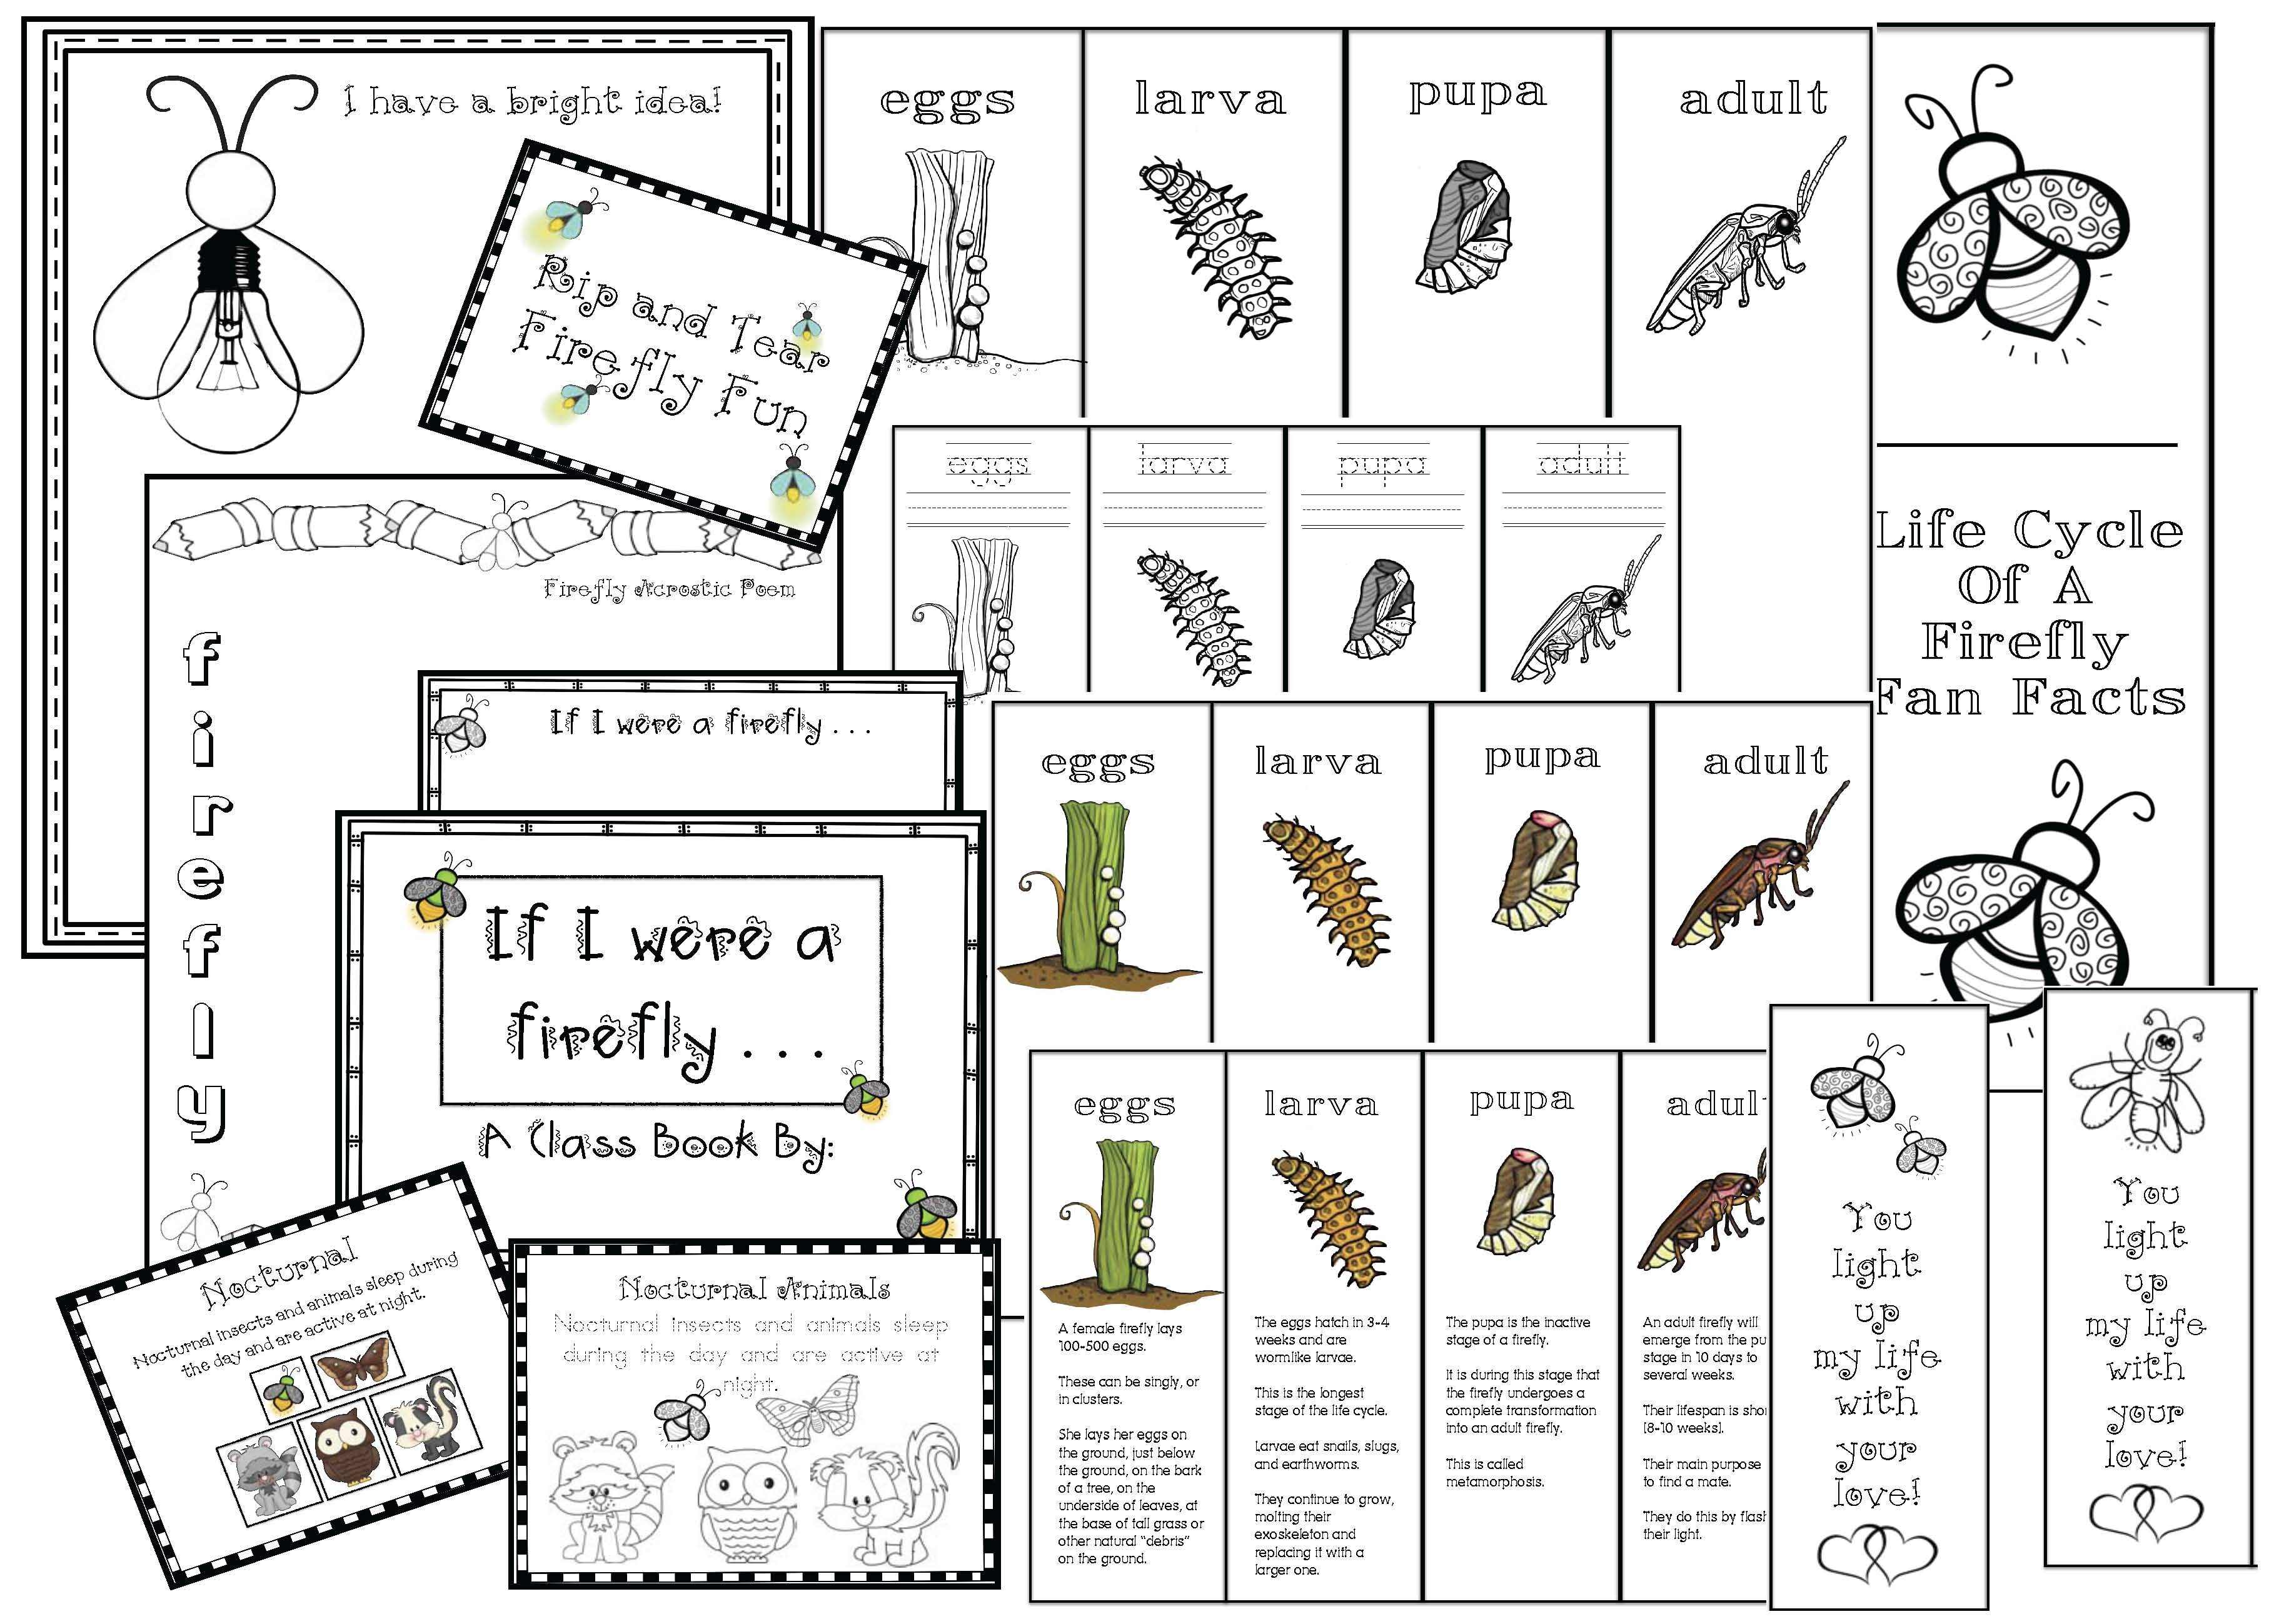 firefly activities, firefly crafts, lifecycle of a firefly, firefly games, firefly word find, firefly poems, firefly photographs